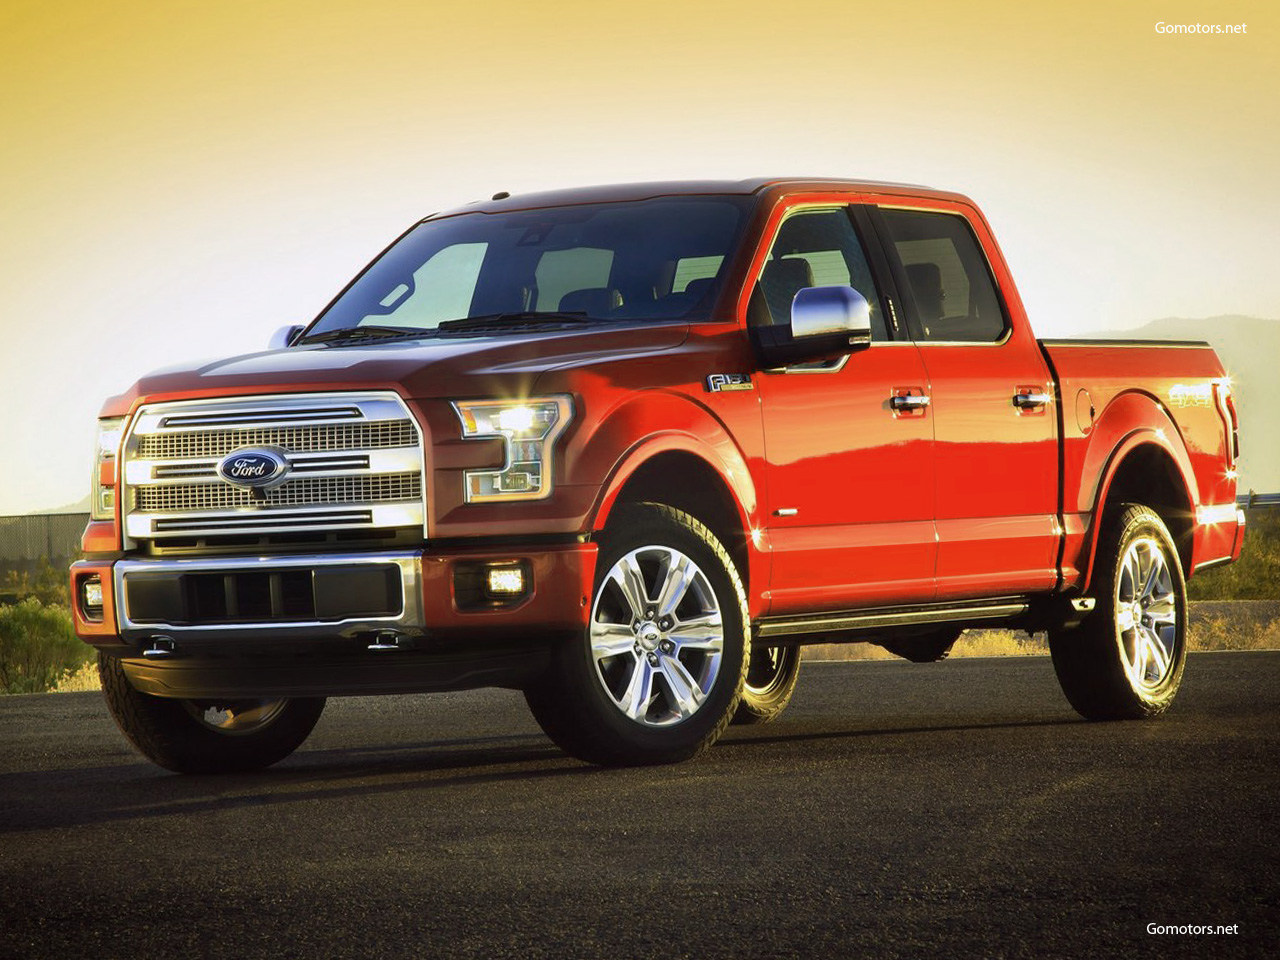 ford f 150 2015 reviews ford f 150 2015 car reviews. Black Bedroom Furniture Sets. Home Design Ideas